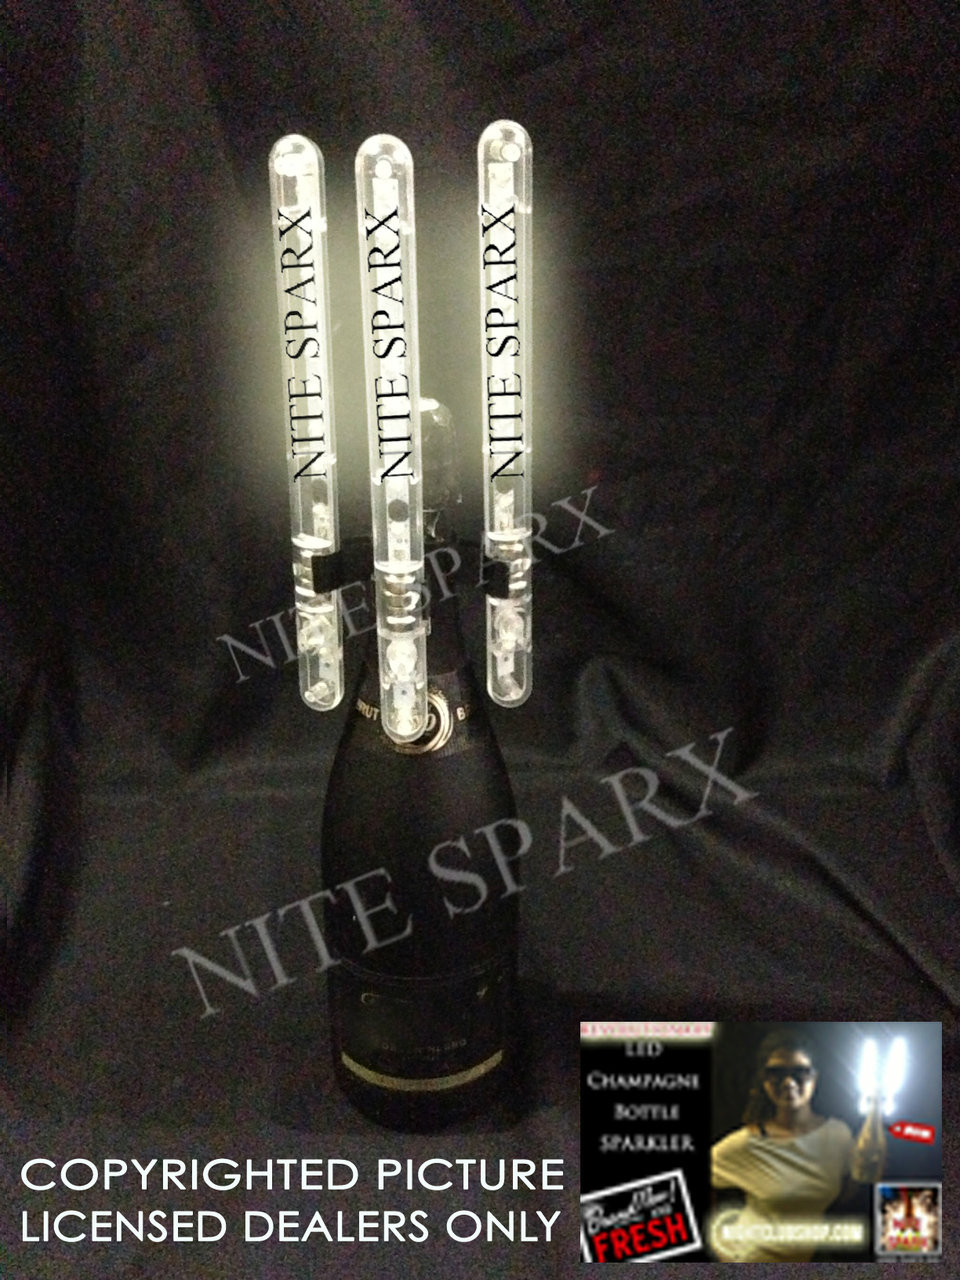 LED Bottle Sparkler, LED, Bottle Sparkler, Bottle, Sparkler, Electric champagne bottle sparkler LED, alternative, Champagne Sparkler, Bottle Sparkler, LED Spark